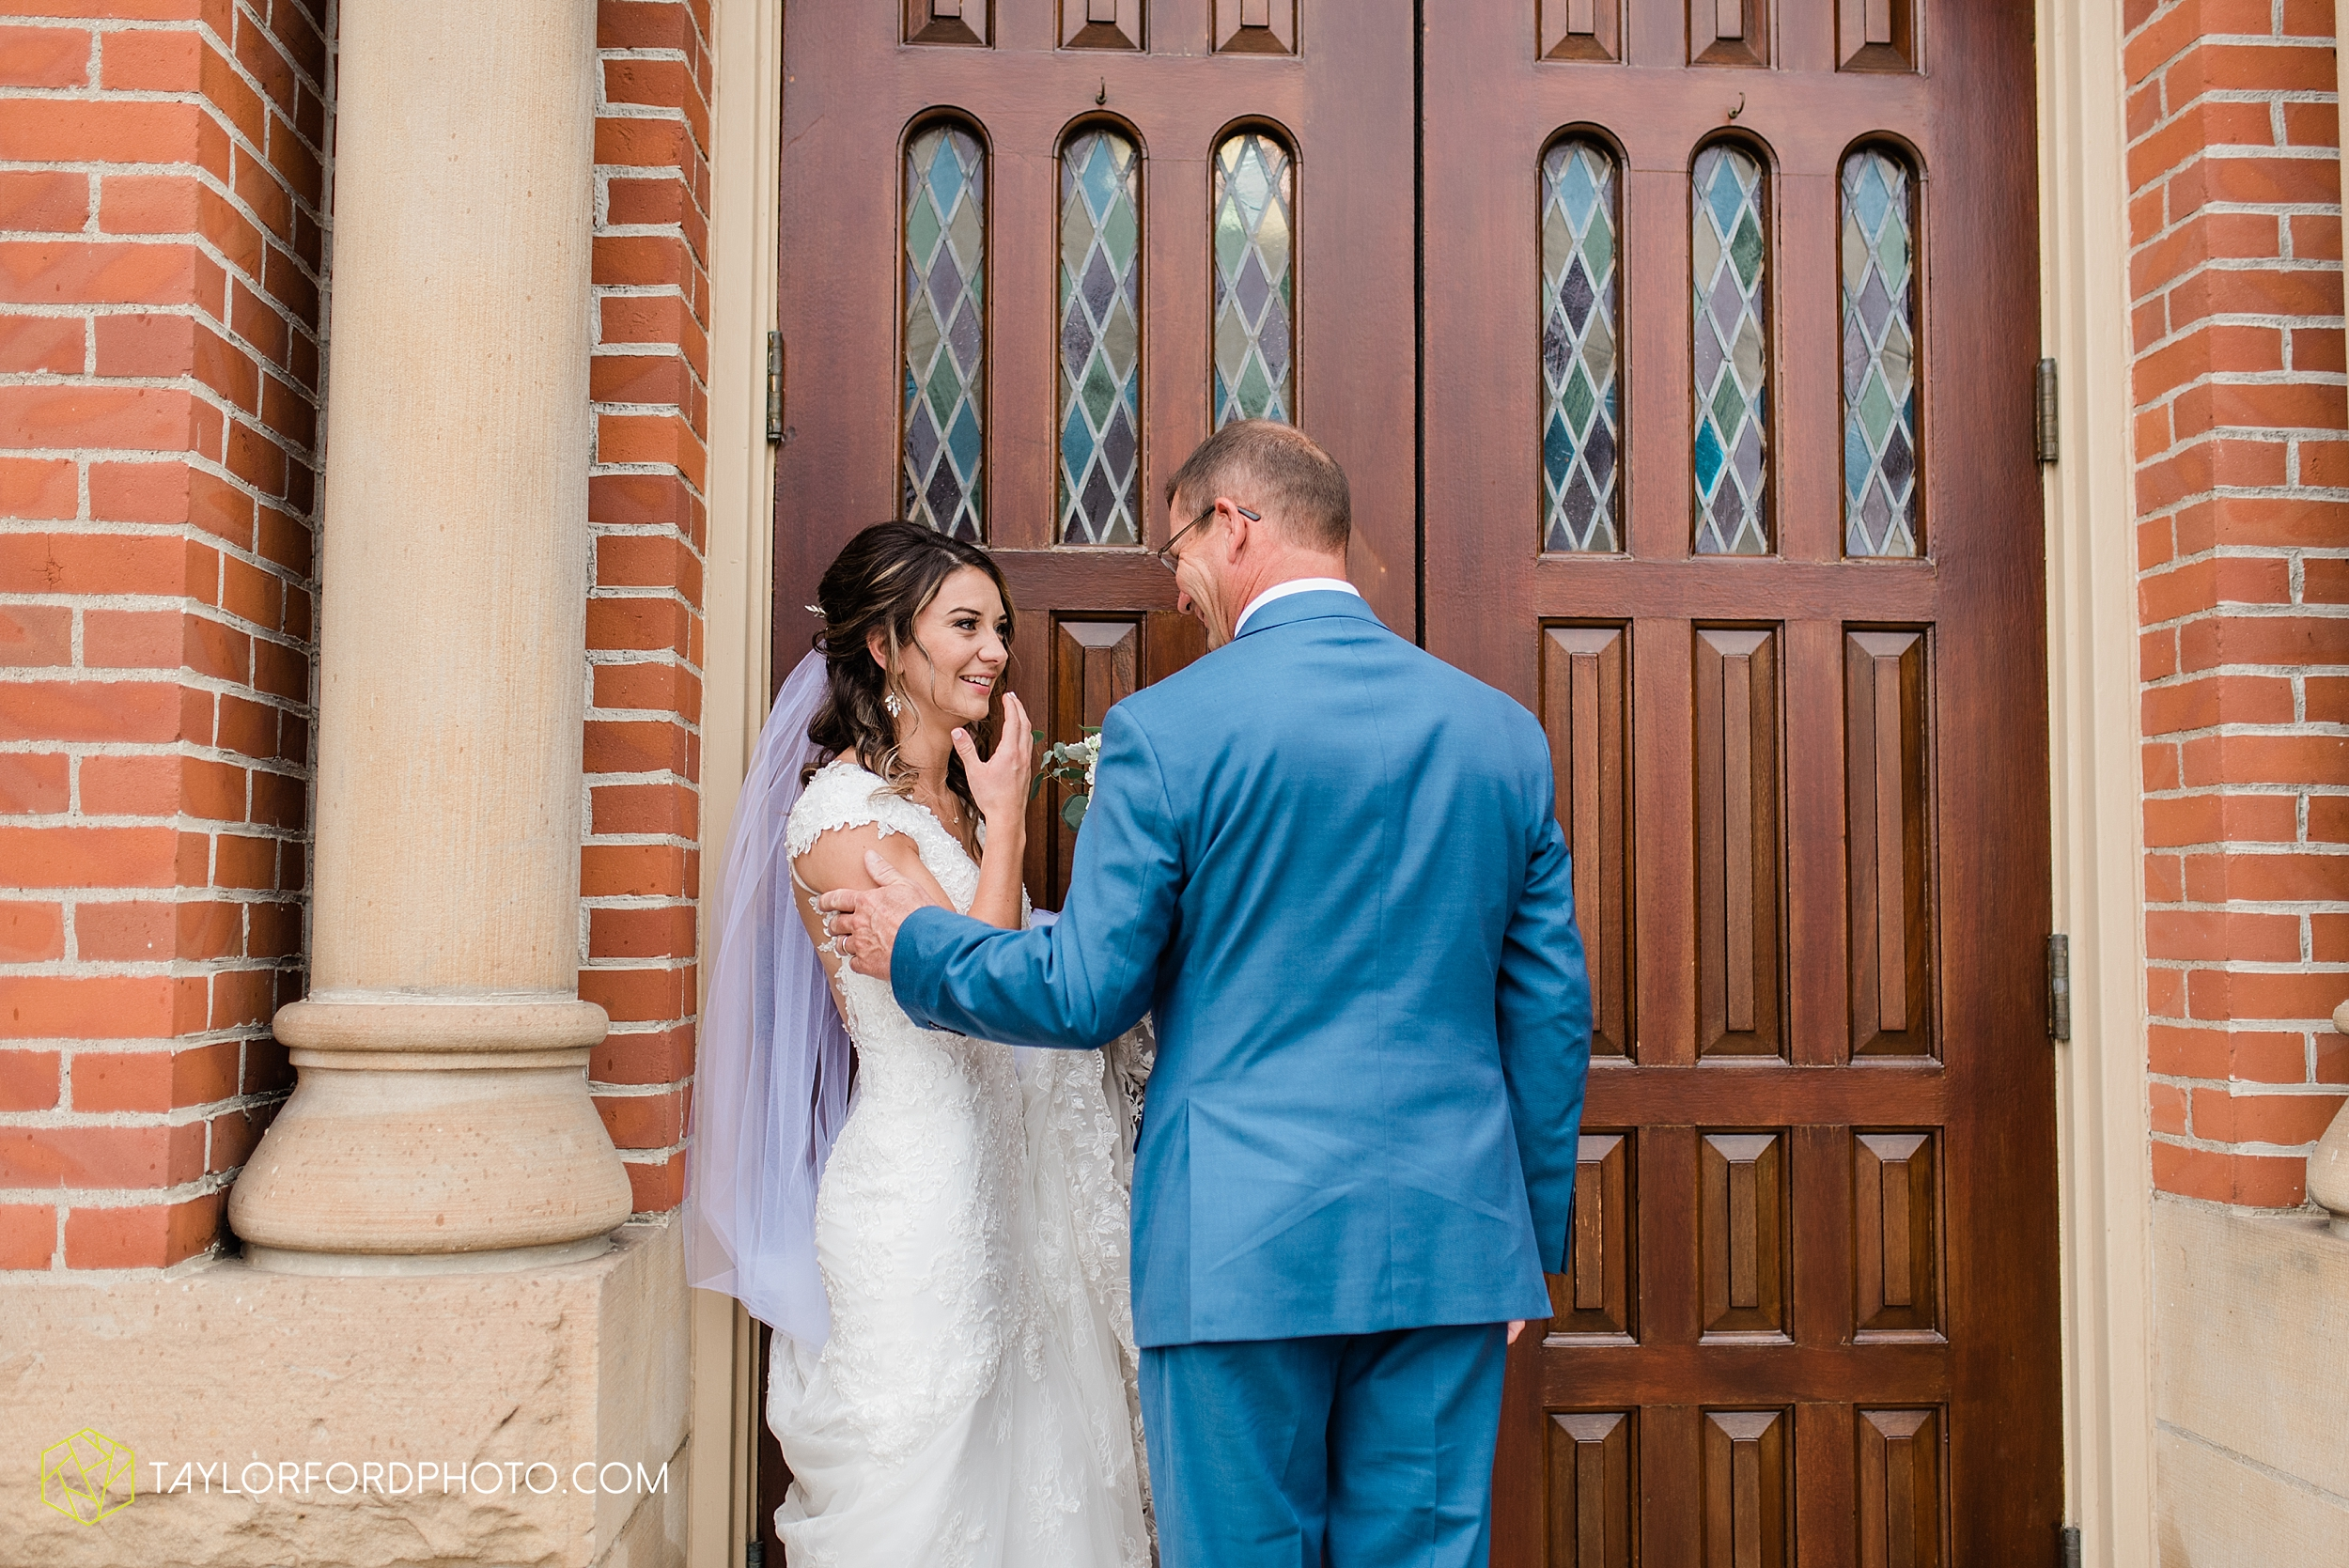 kacee-haden-sholl-second-story-saint-marys-knights-of-columbus-defiance-ohio-wedding-photographer-taylor-ford-photography_0147.jpg